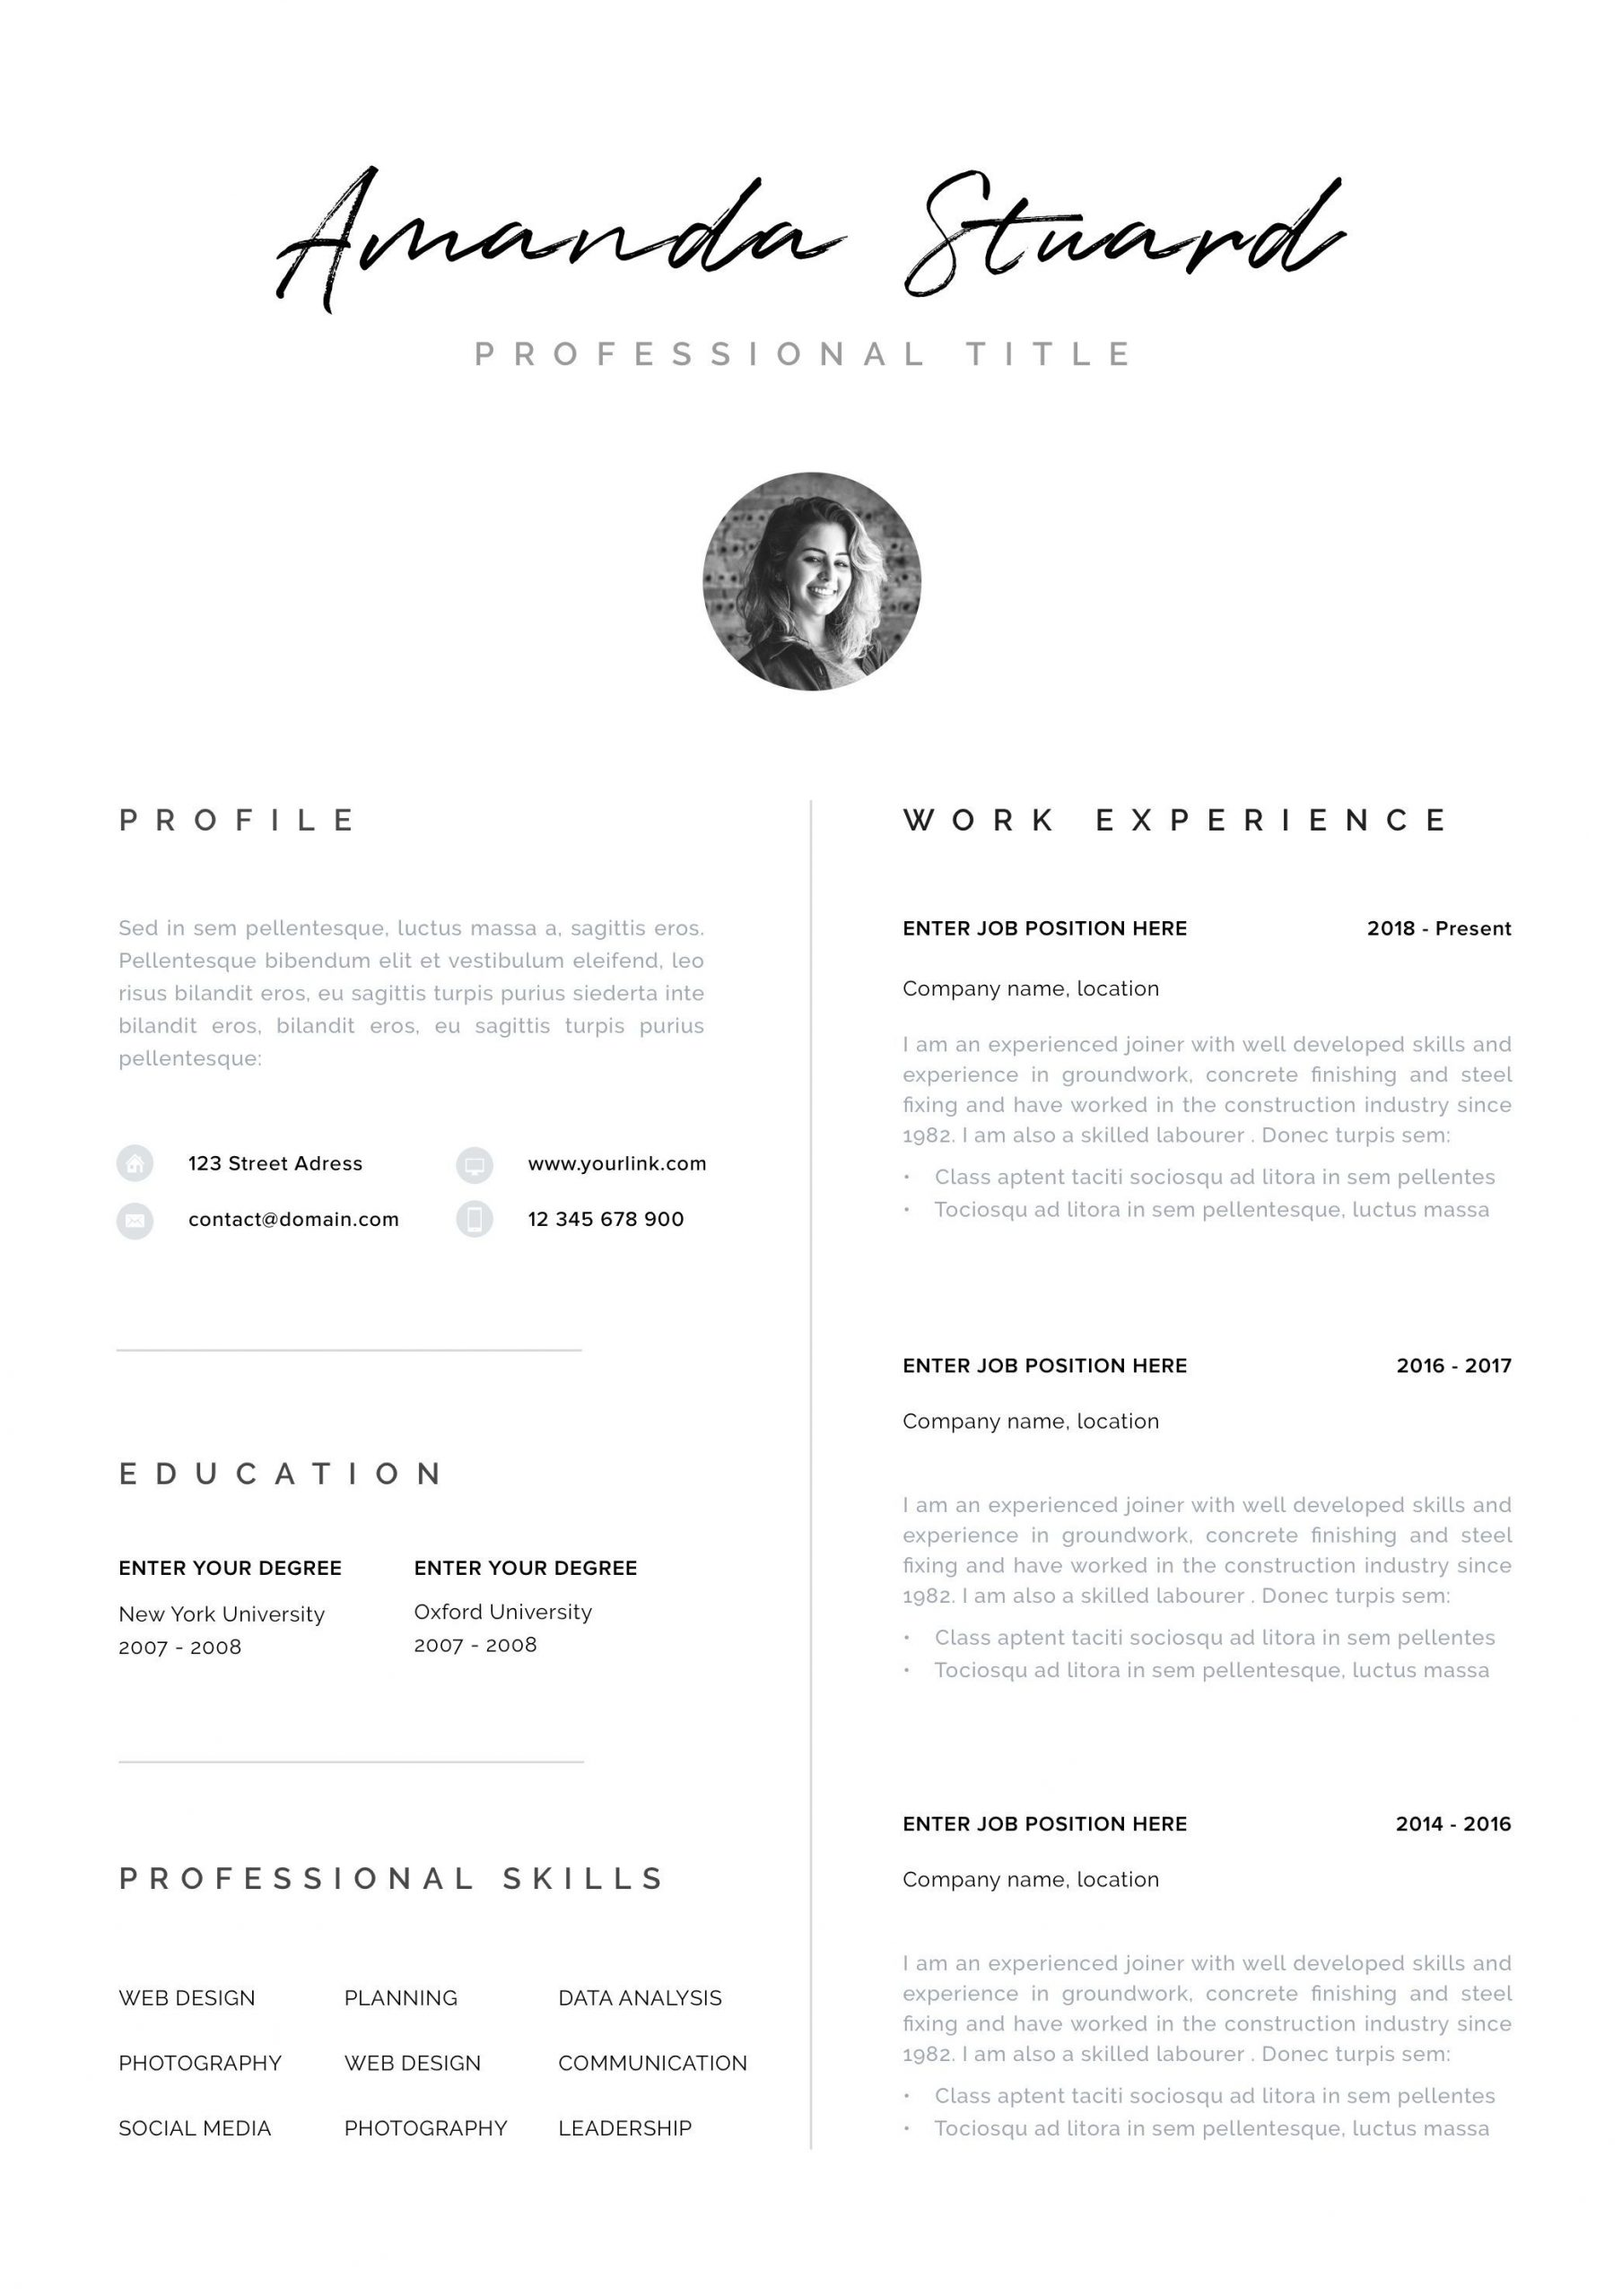 Sending A Cover Letter and Resume by Email Of Modern Resume Template Cv Template Cover Letter